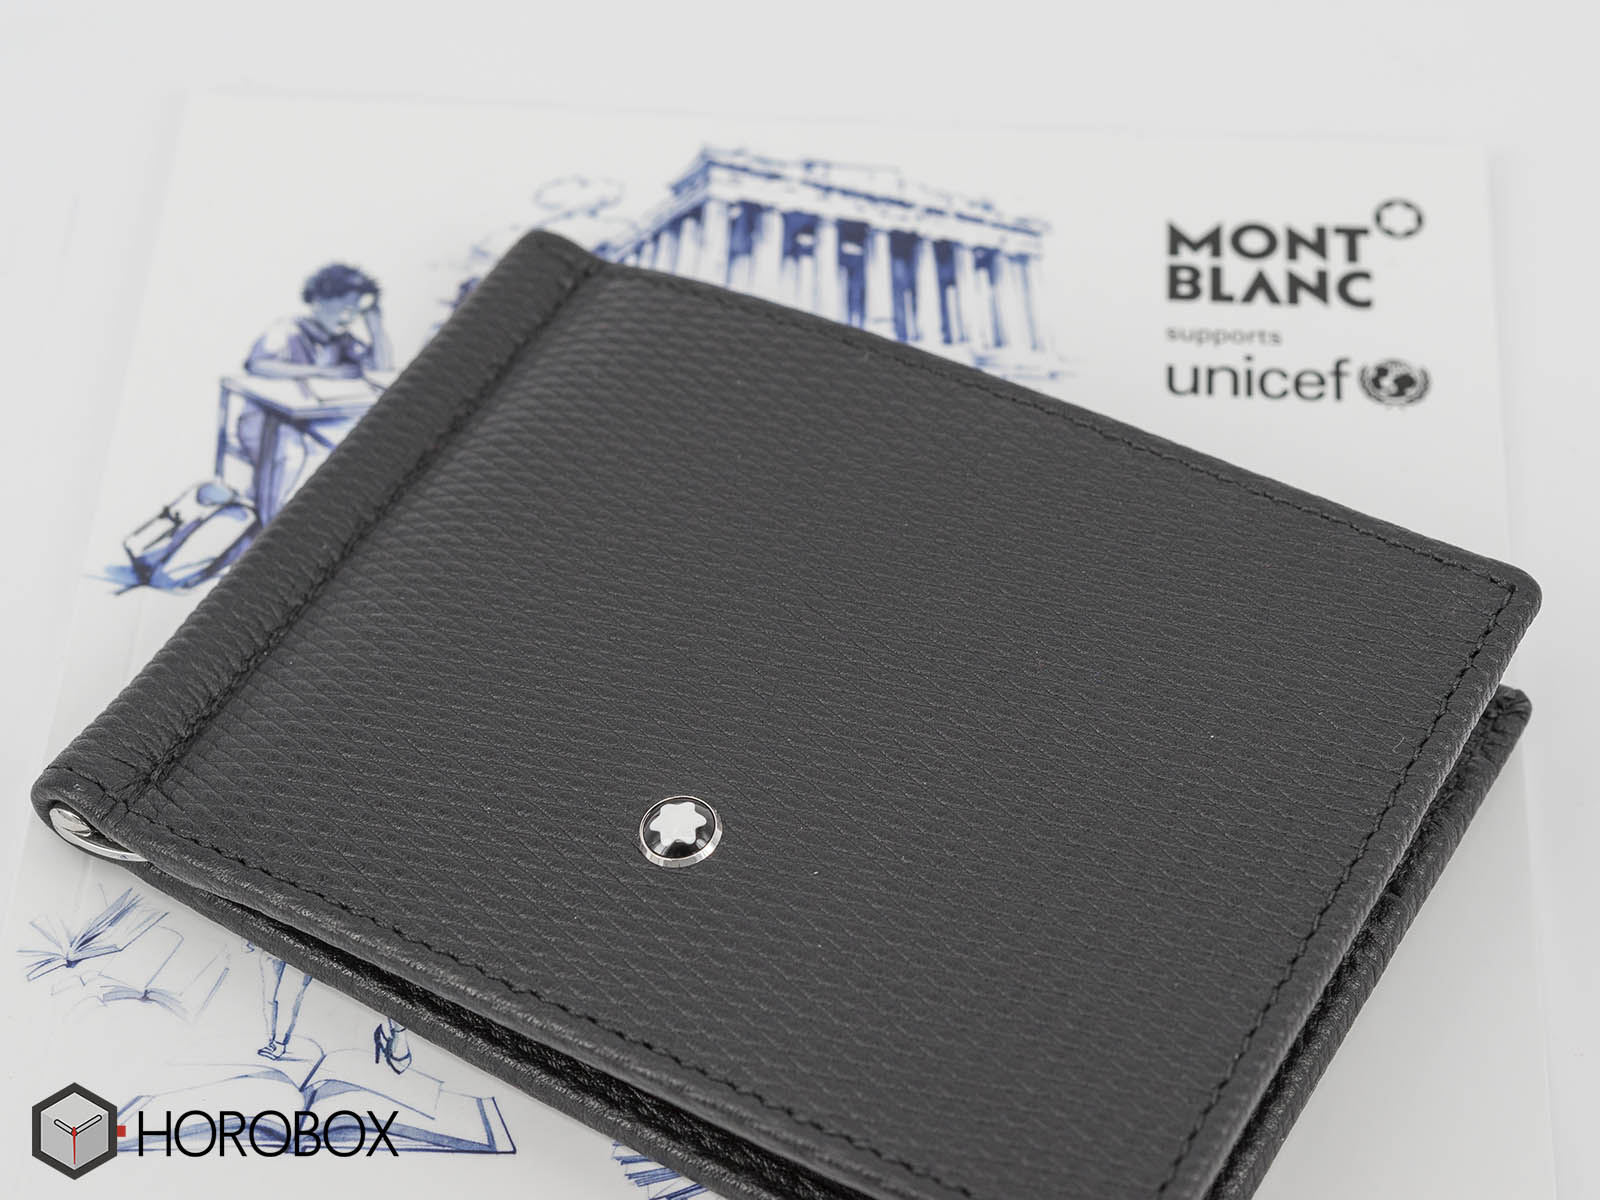 montblanc-unicef-collection-14-.jpg